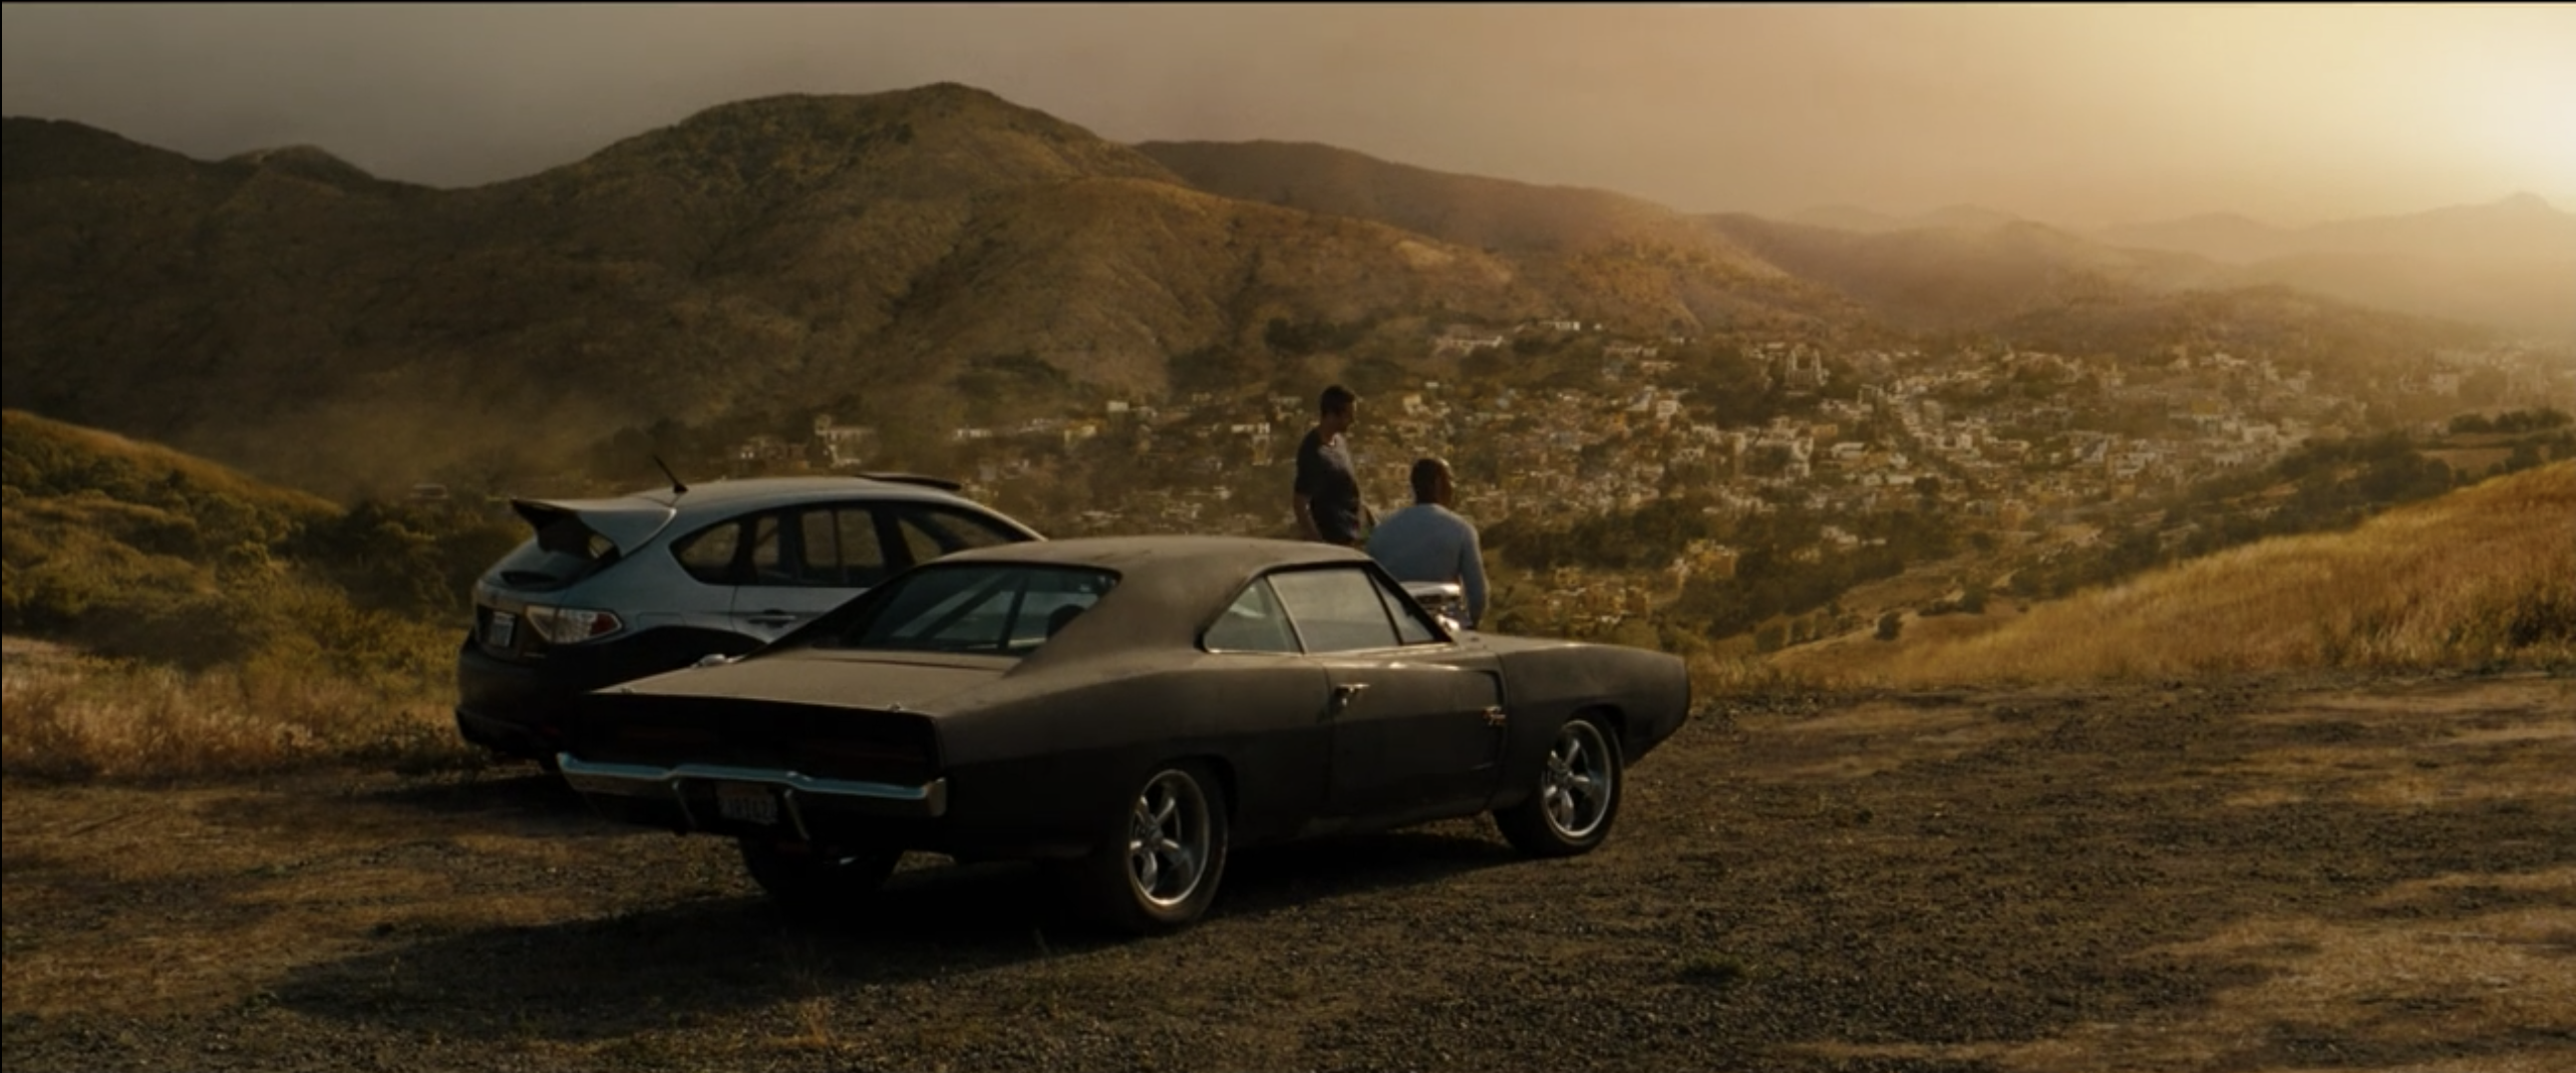 Fast Furious Charger Hills